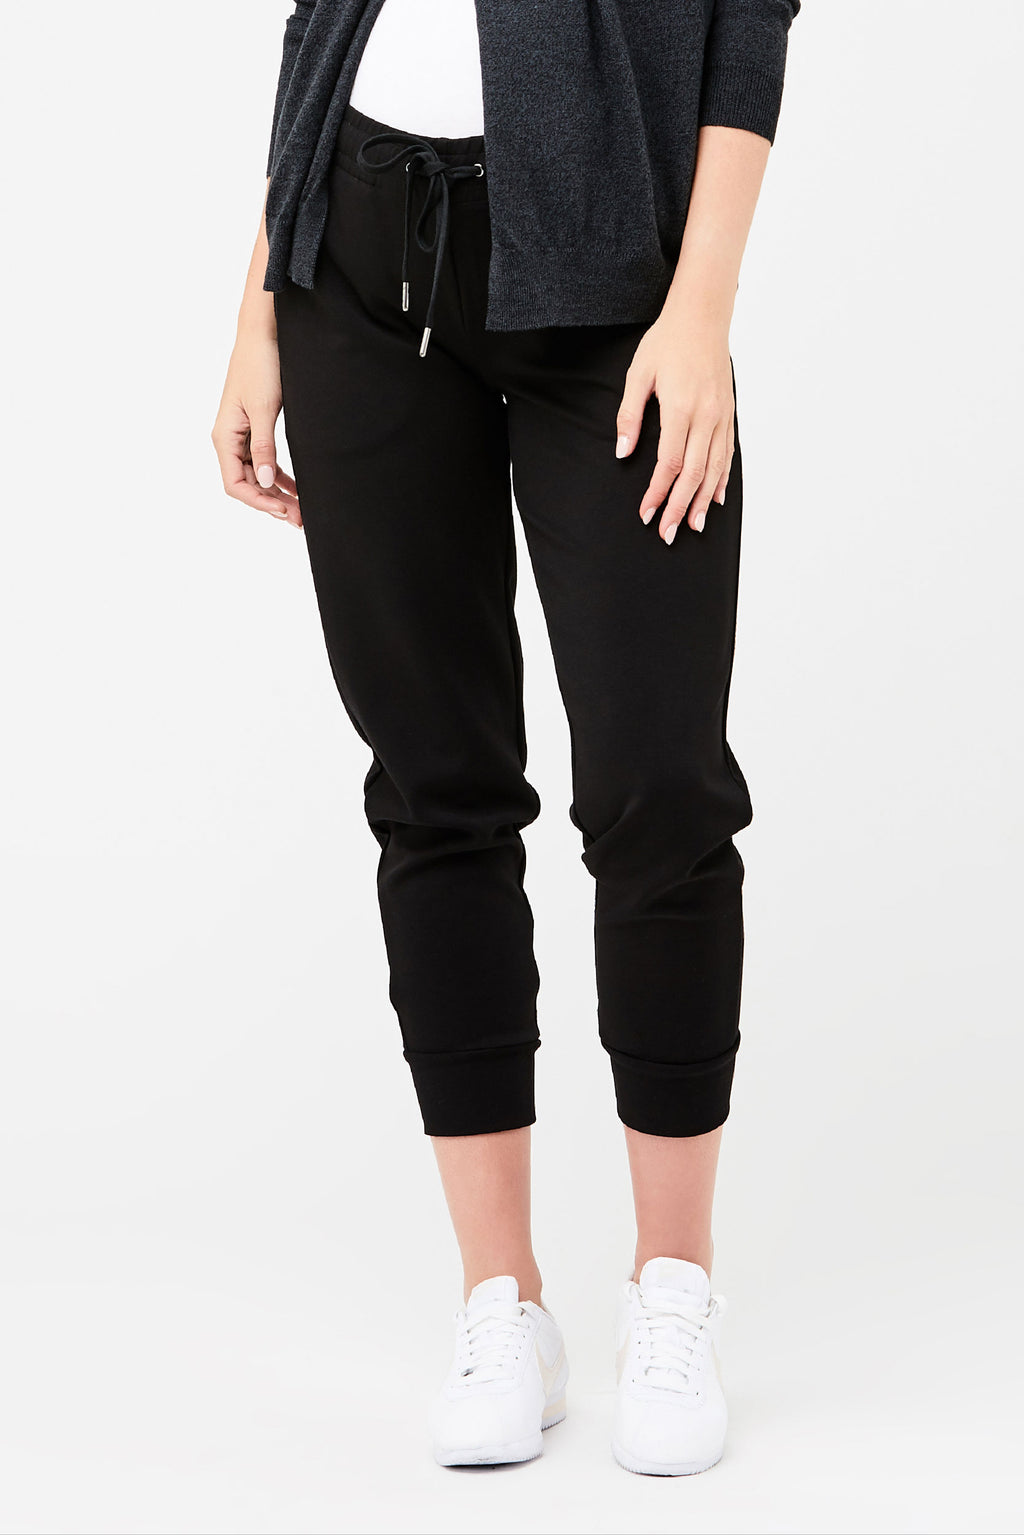 Super Soft Scuba Jogger Black by Ripe